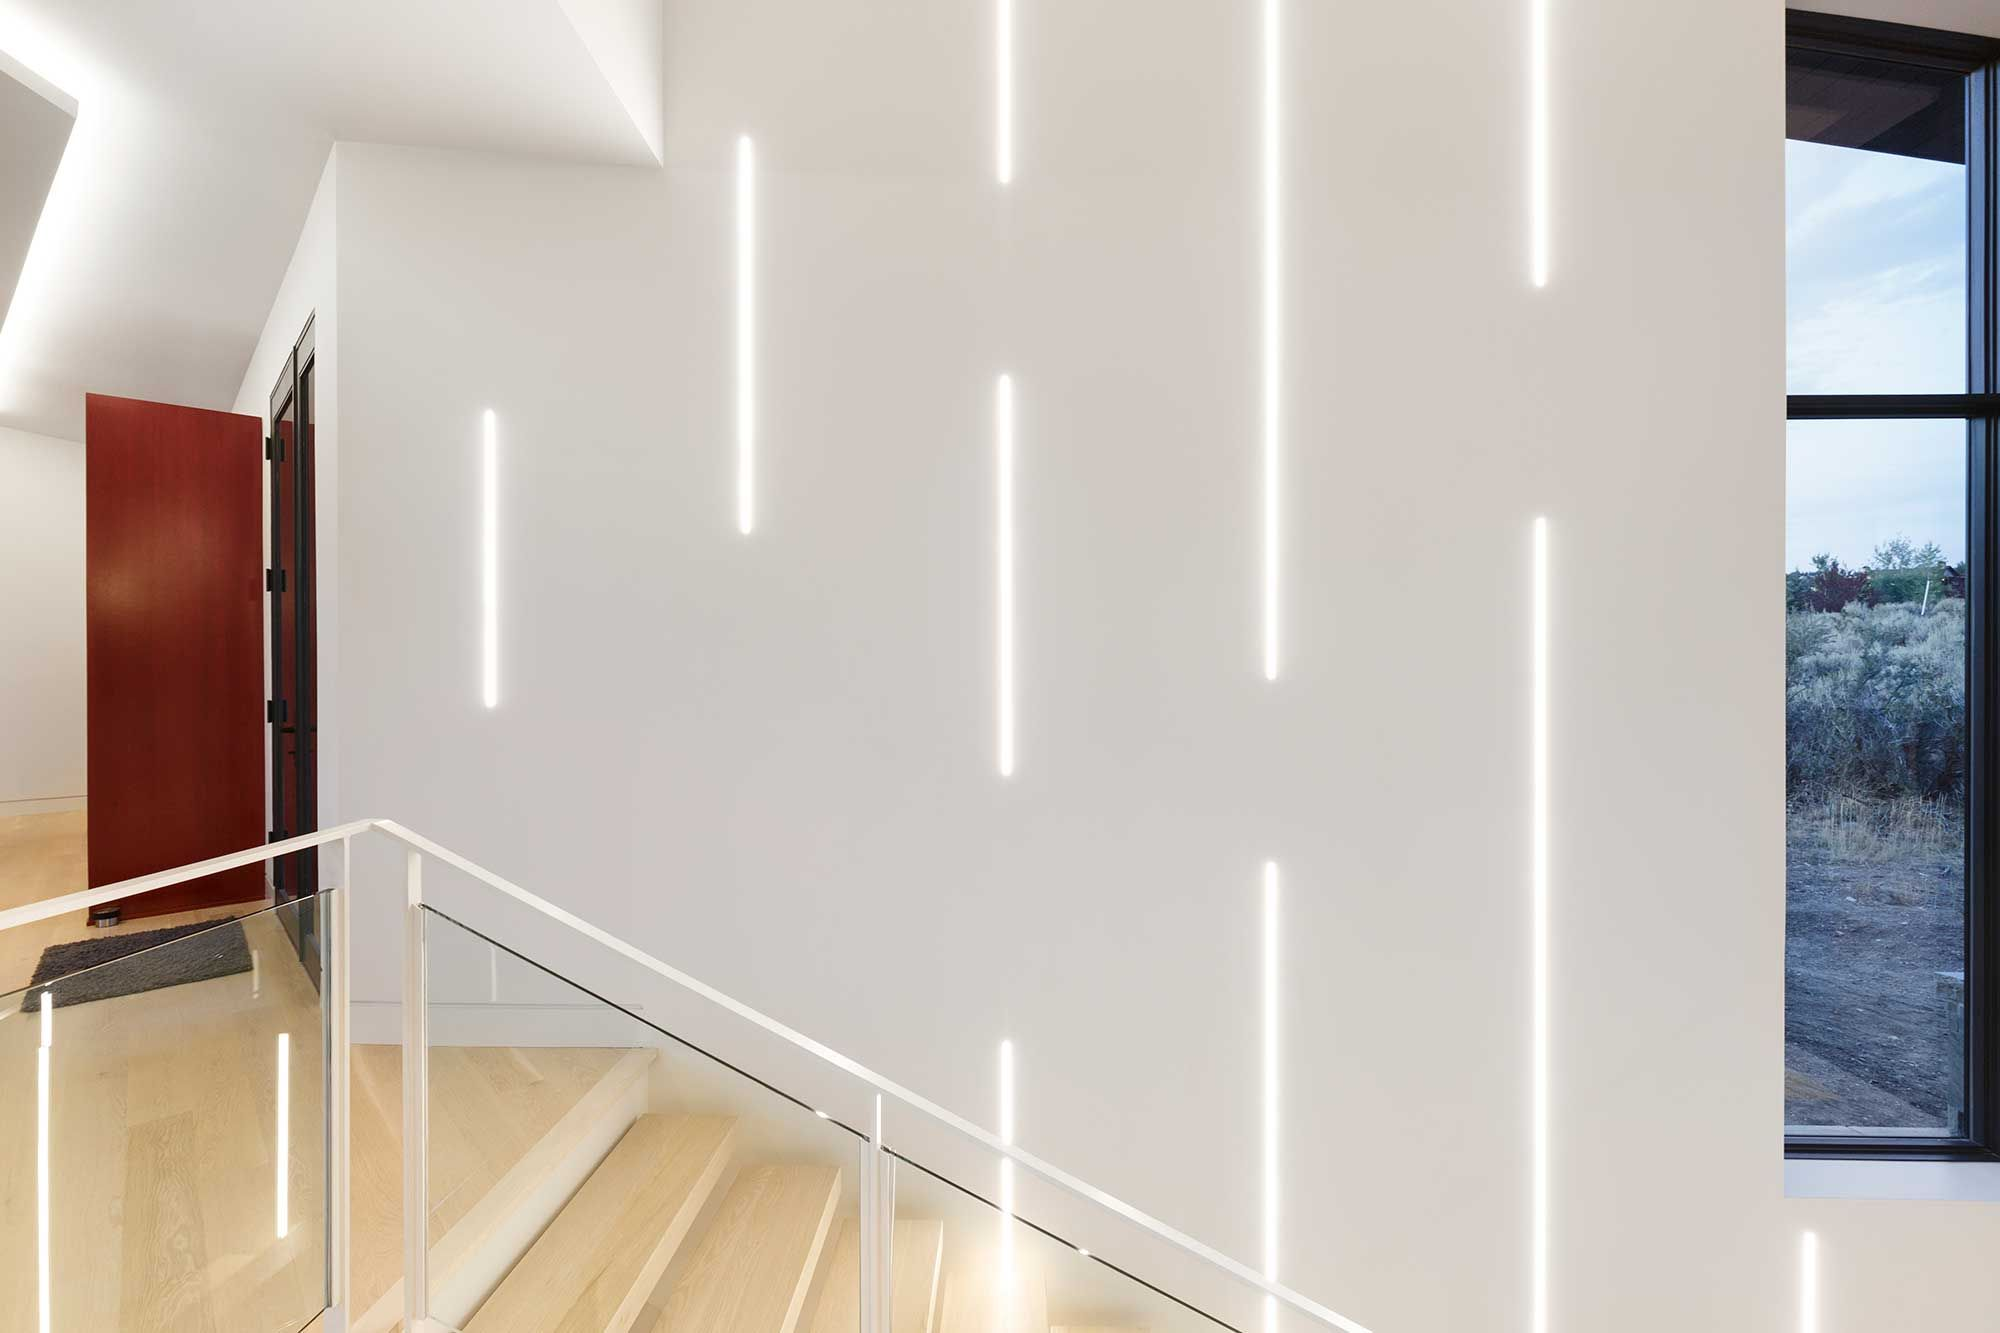 Truline 5a 2 5w 24vdc Plaster In Led System By Pureedge